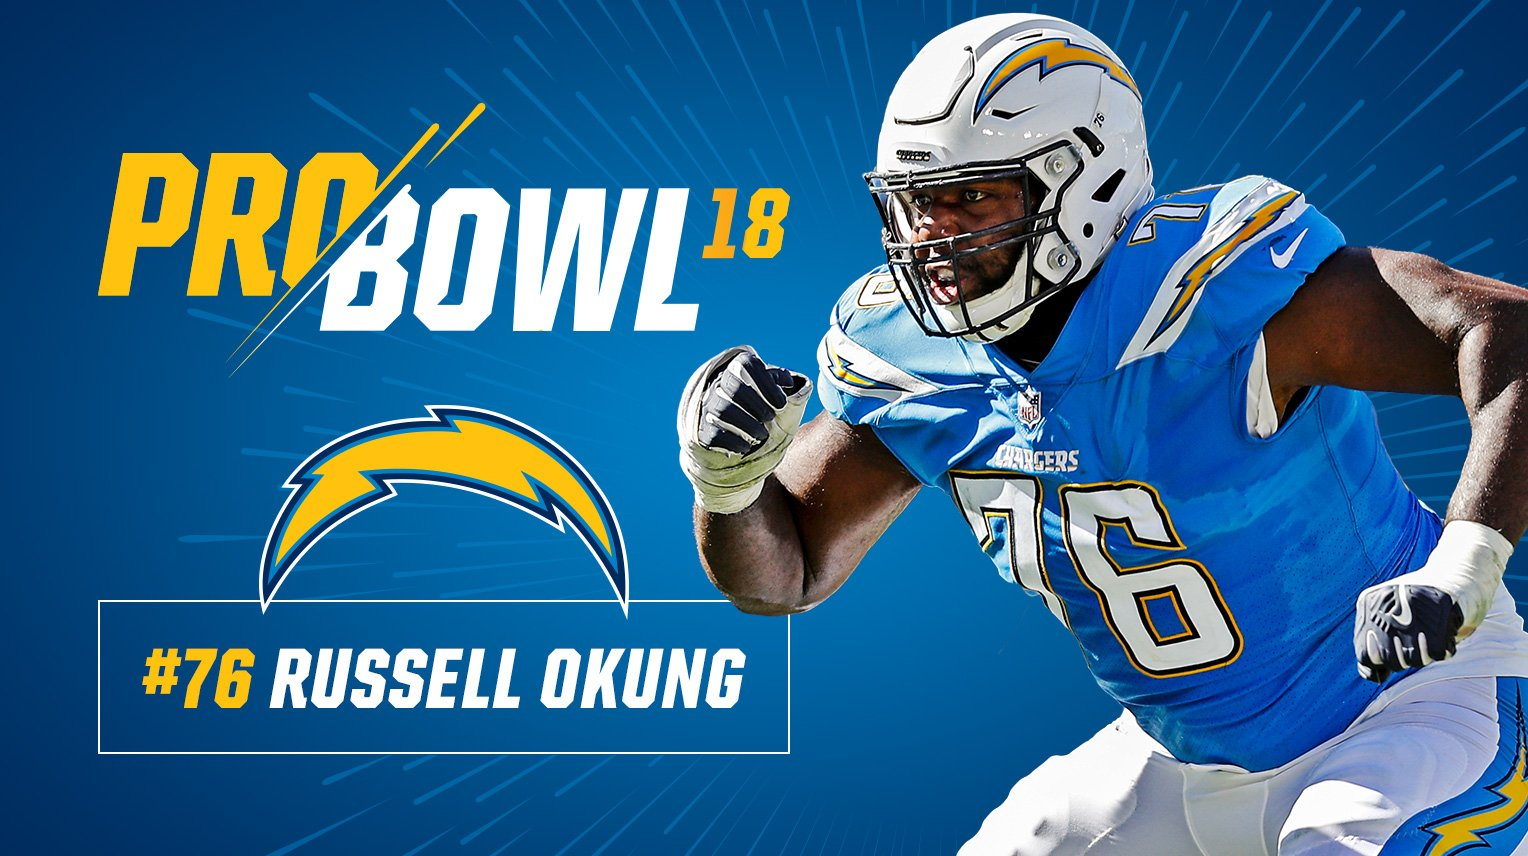 .@RussellOkung named to the 2018 Pro Bowl.  MORE: https://t.co/OROr7ASfHJ https://t.co/x3sU3N45P9